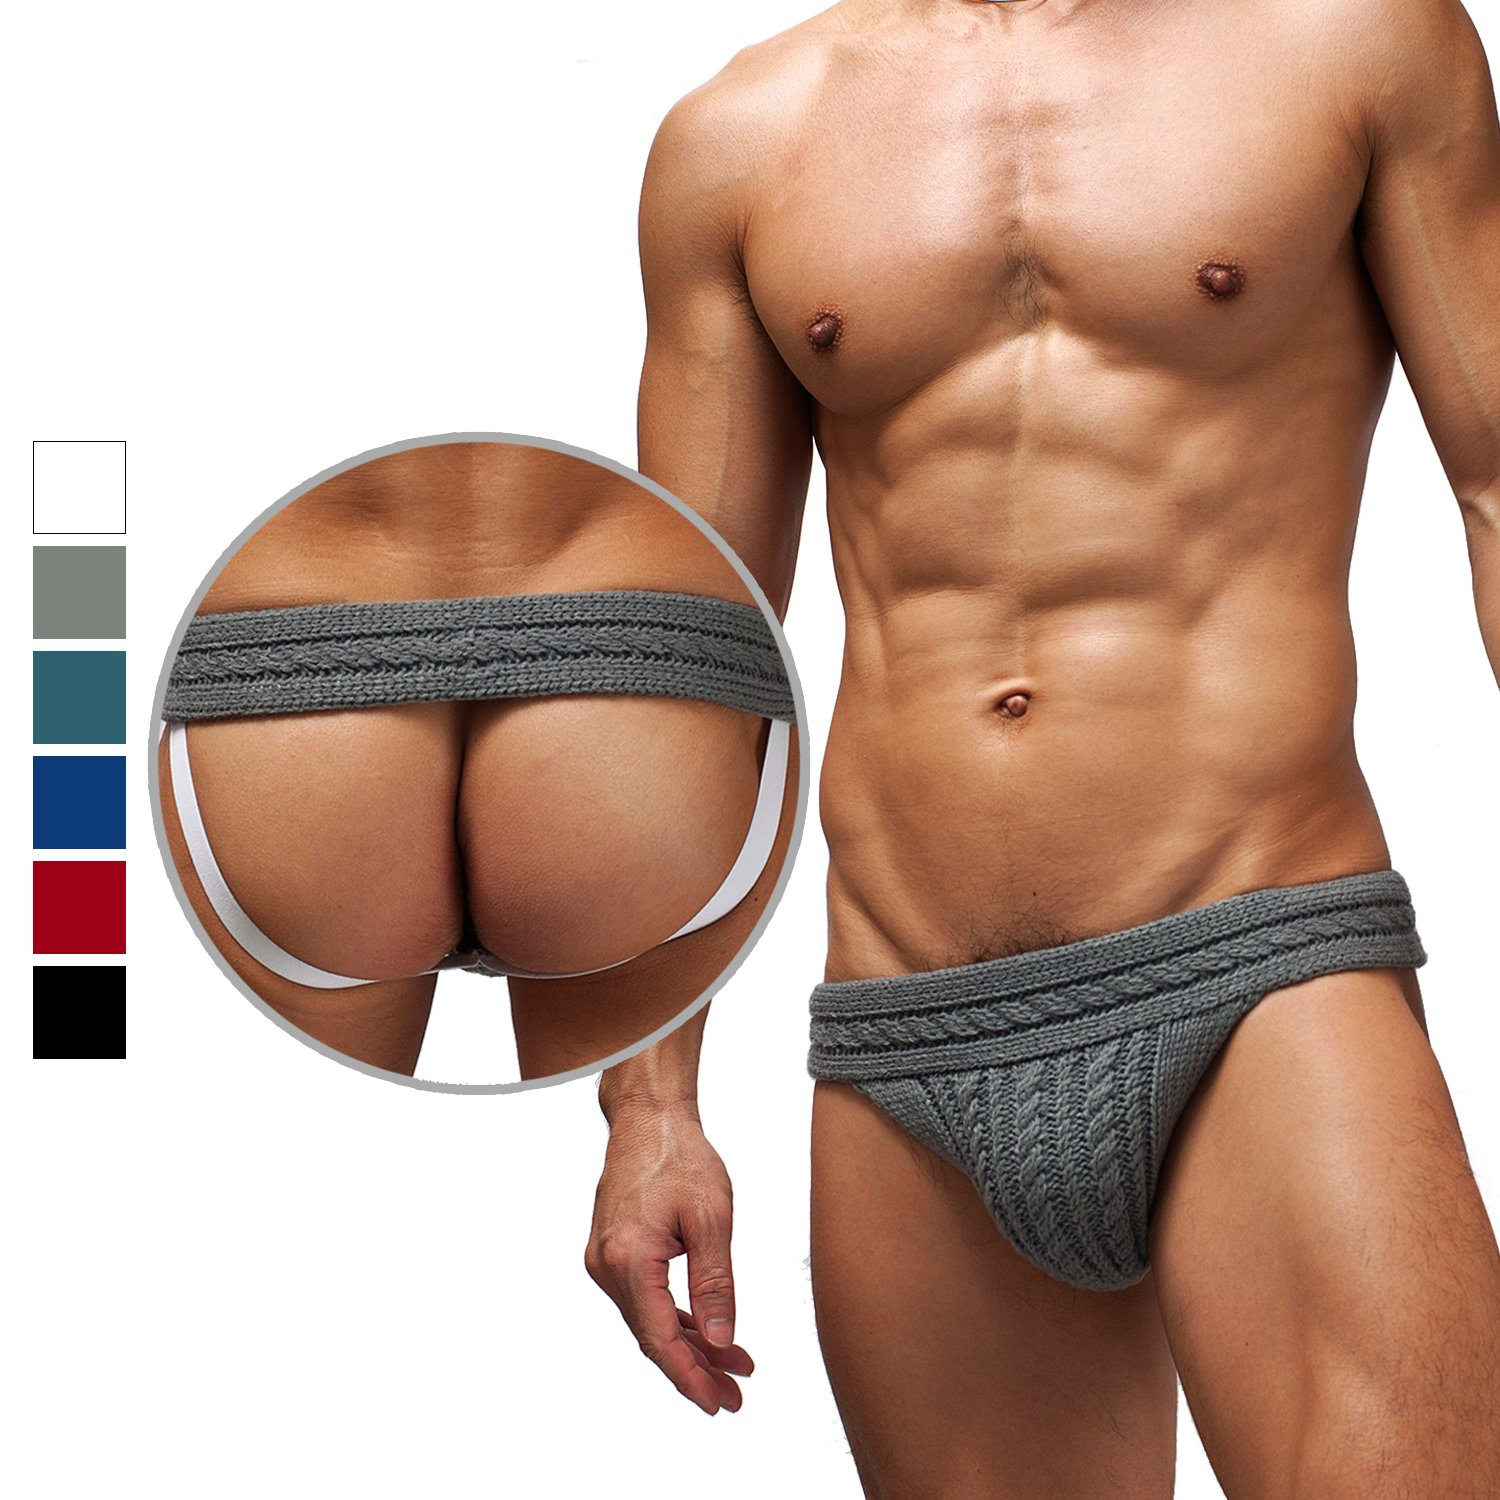 Chris&Je Mens Winter Woolen Jockstrap Underwear for Cold Day by Chris&Je